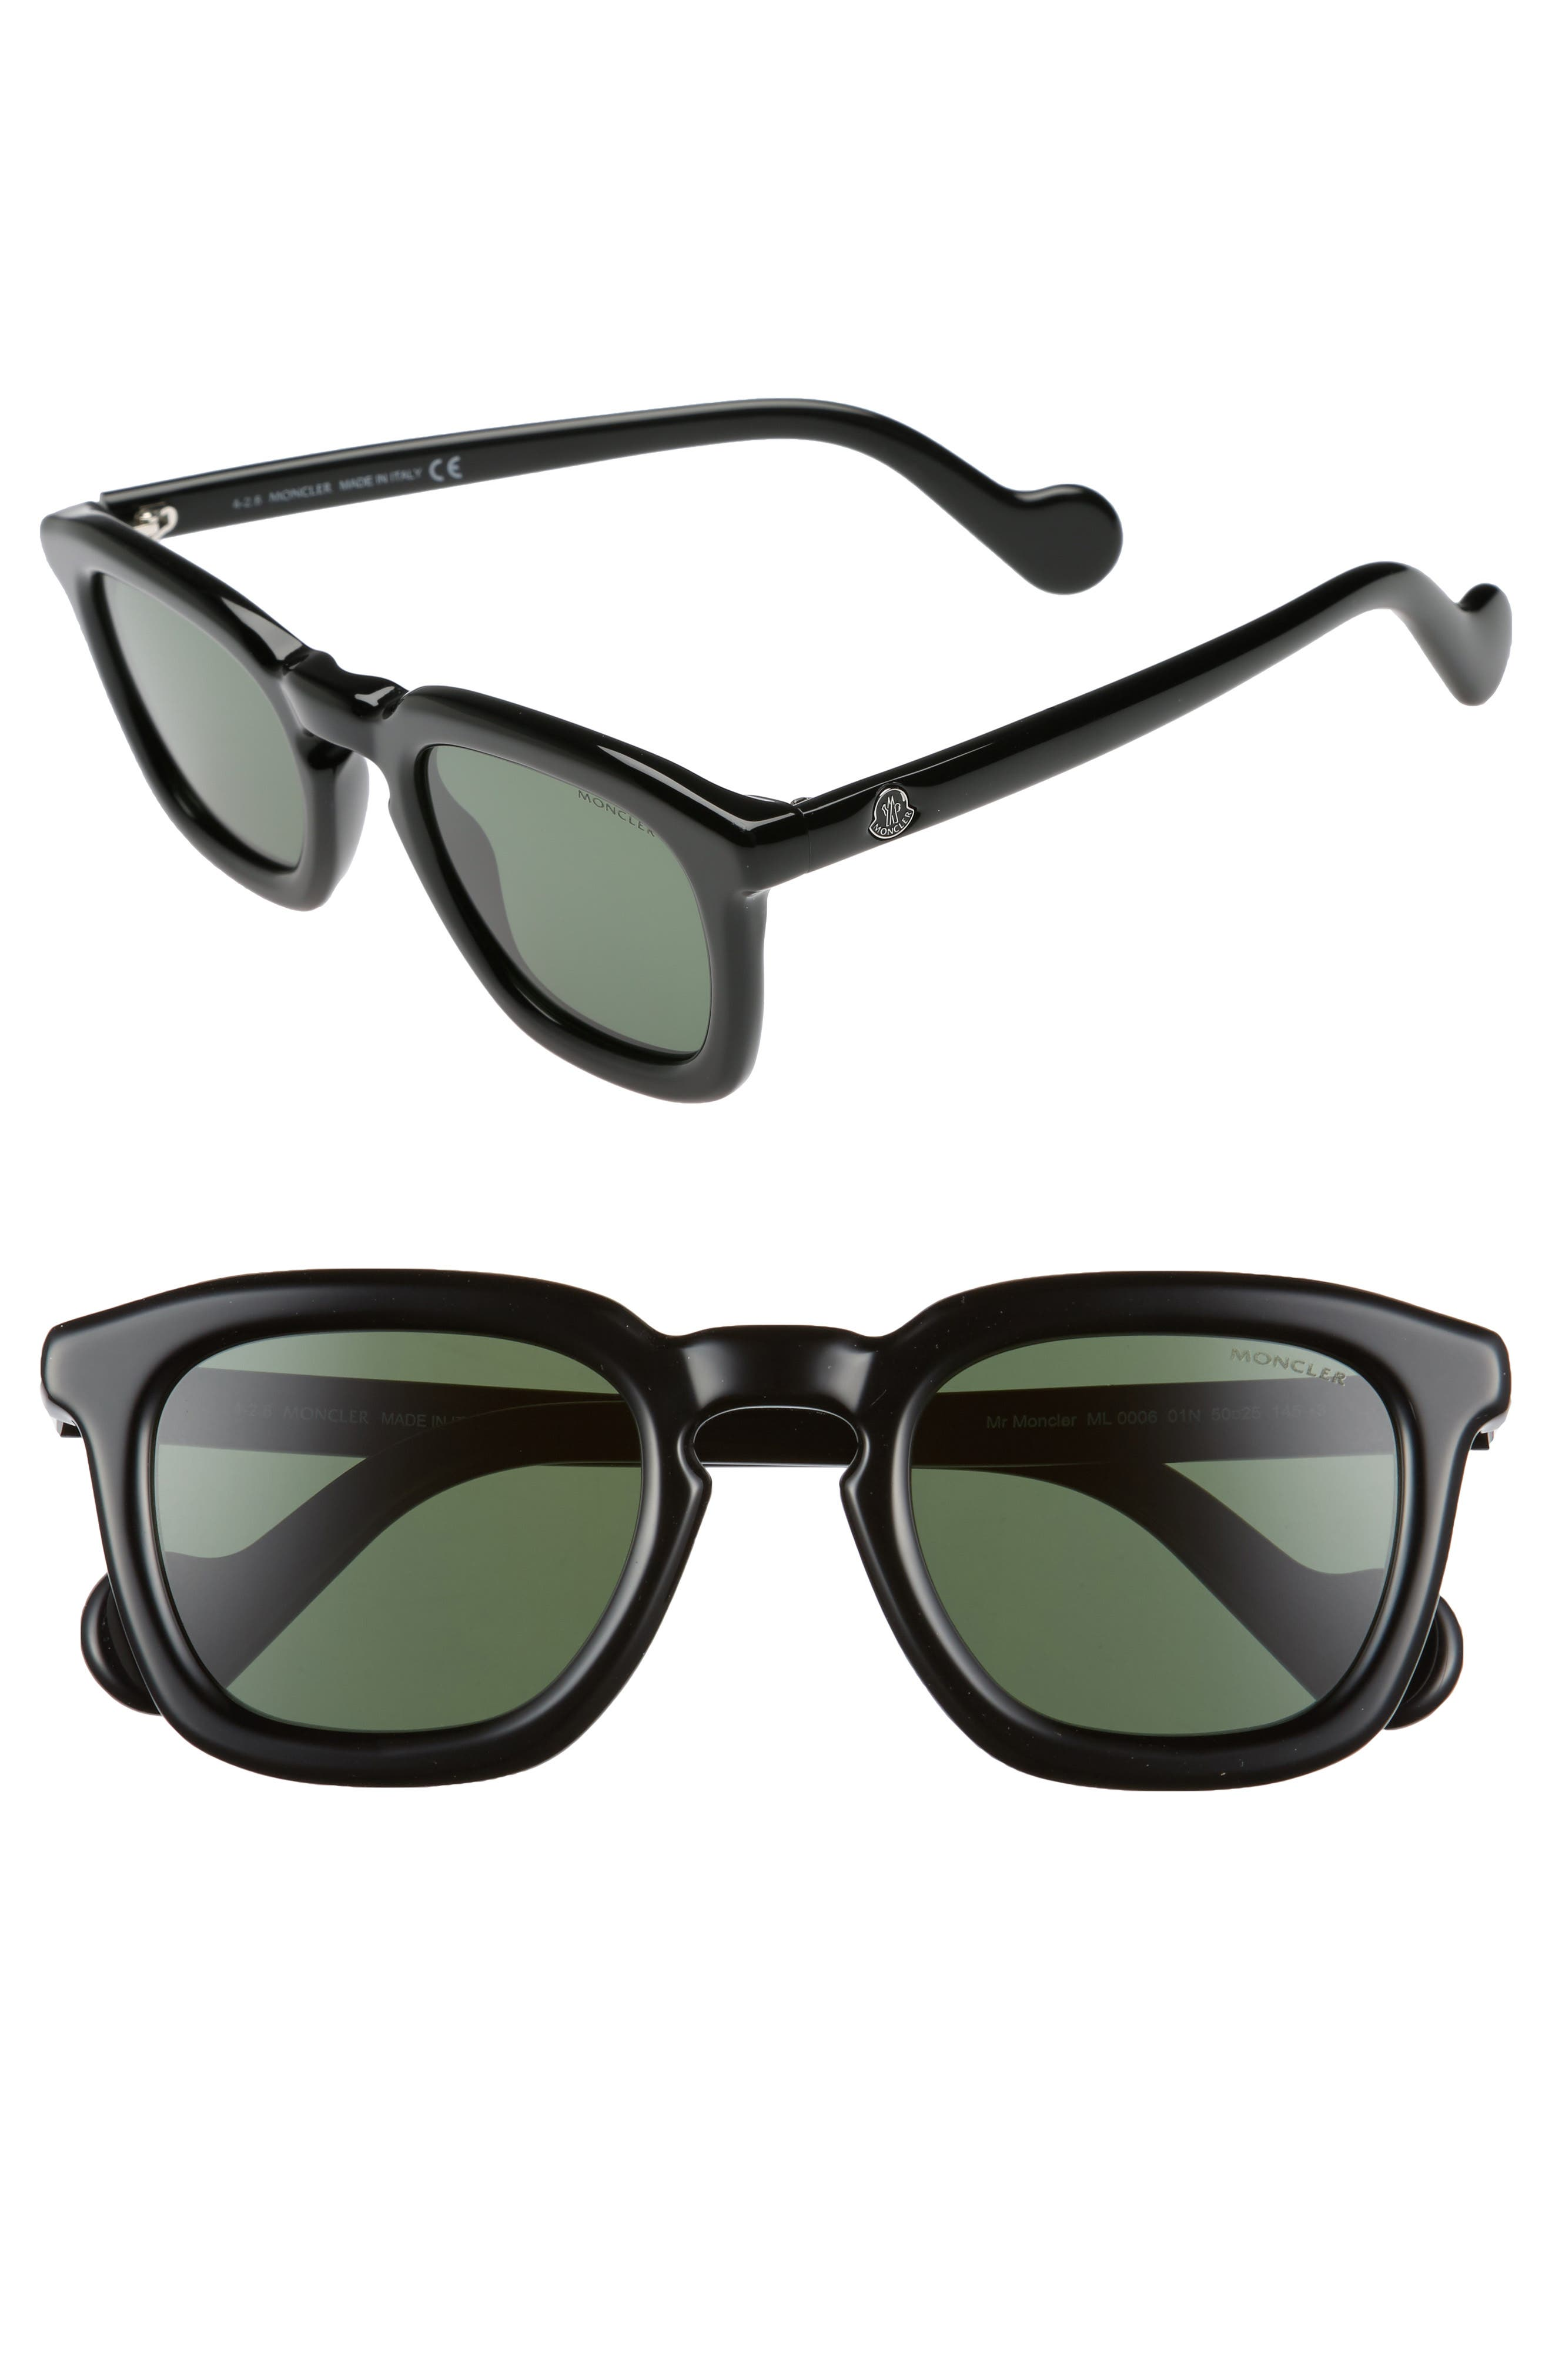 50mm Square Sunglasses,                         Main,                         color, Black/ Green